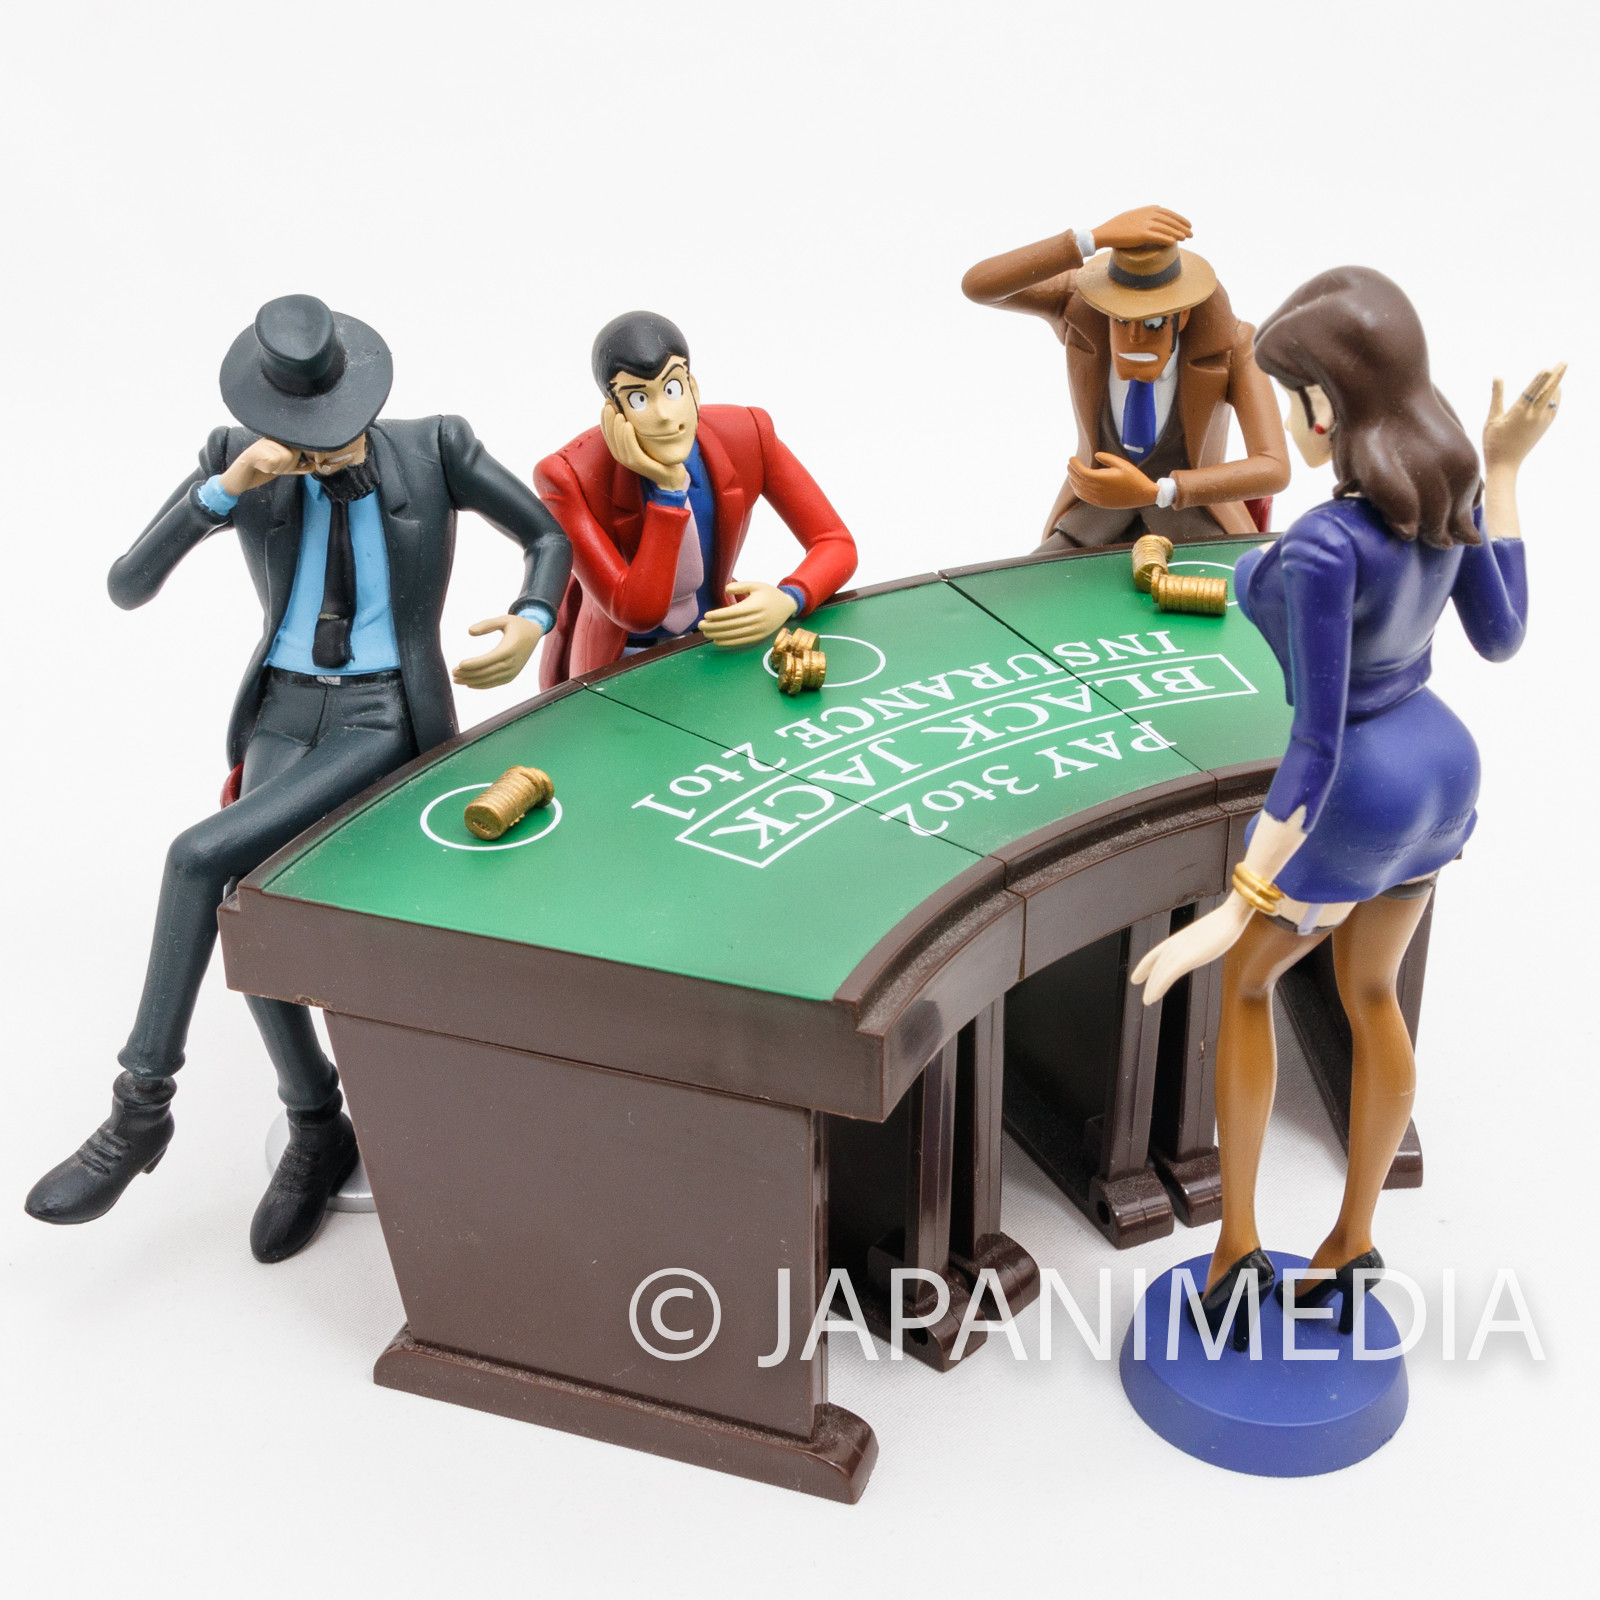 (Parts Missing) Lupin the Third (3rd) Casino Scene Figure Set Banpresto JAPAN ANIME MANGA